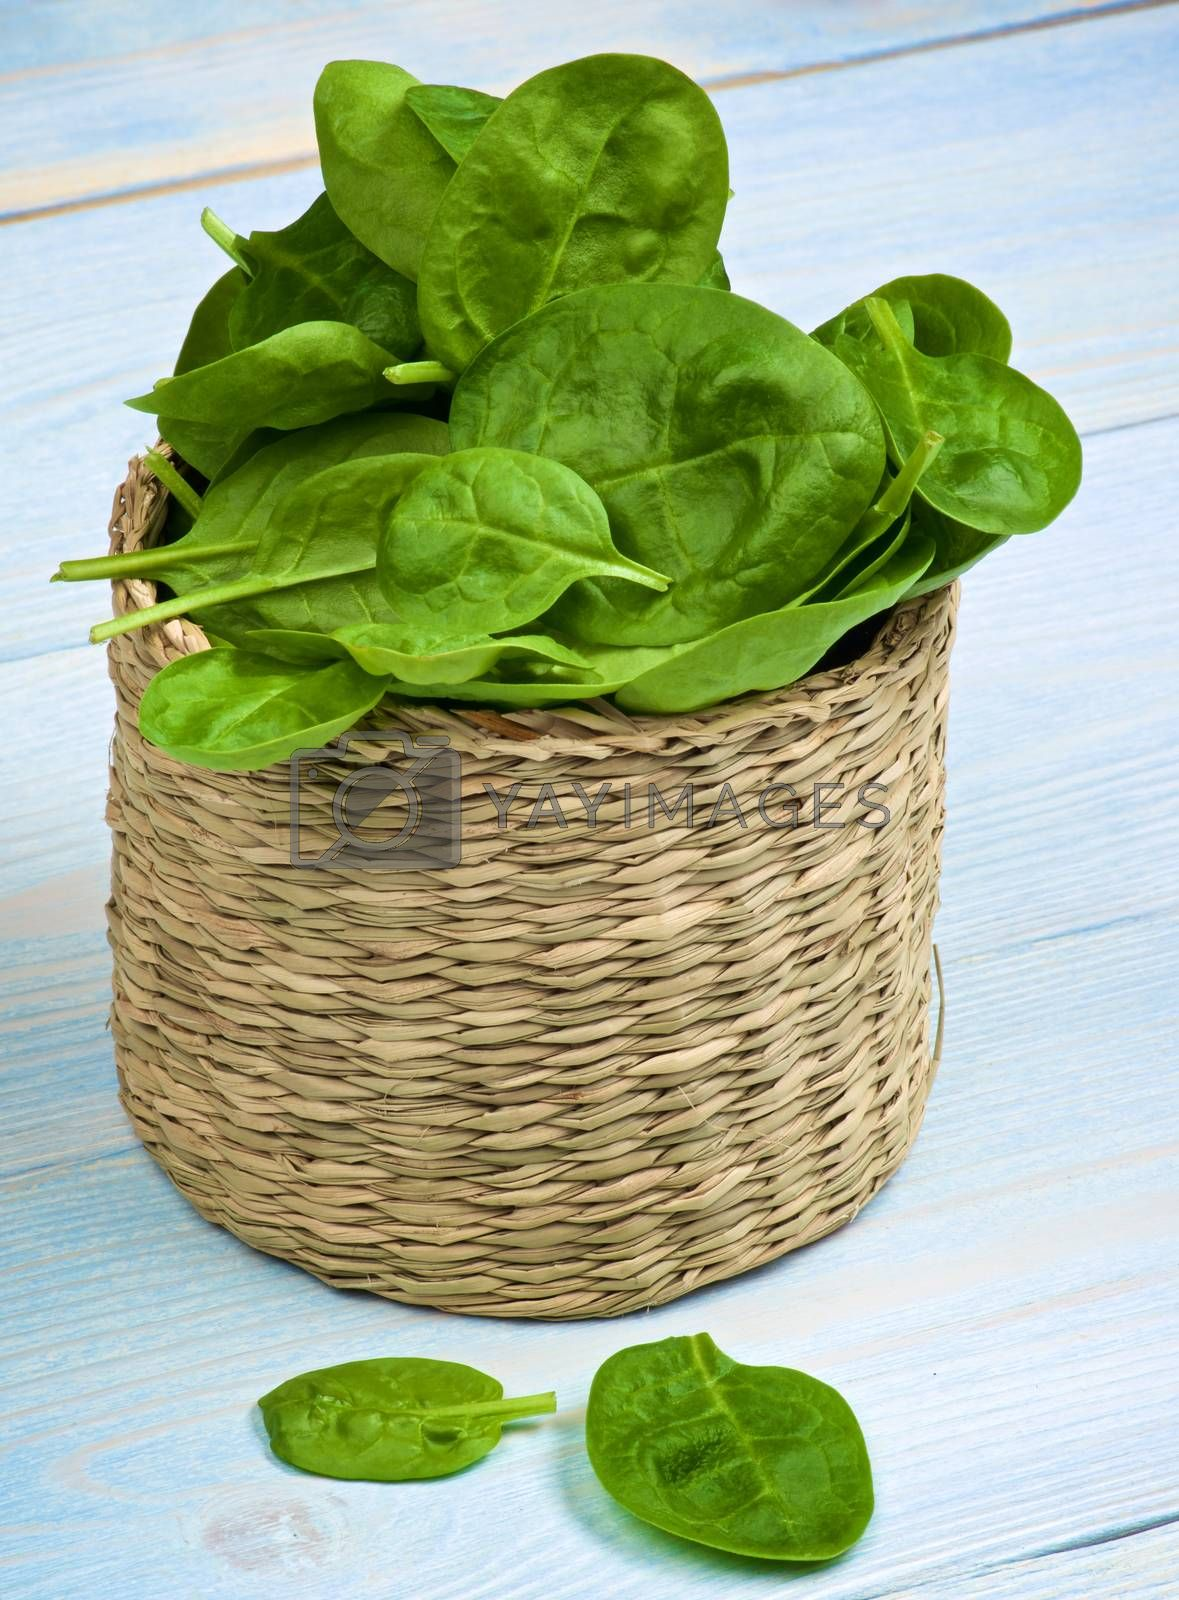 Heap of Small Raw Spinach Leafs in Wicker Cask closeup on Light Blue Wooden background